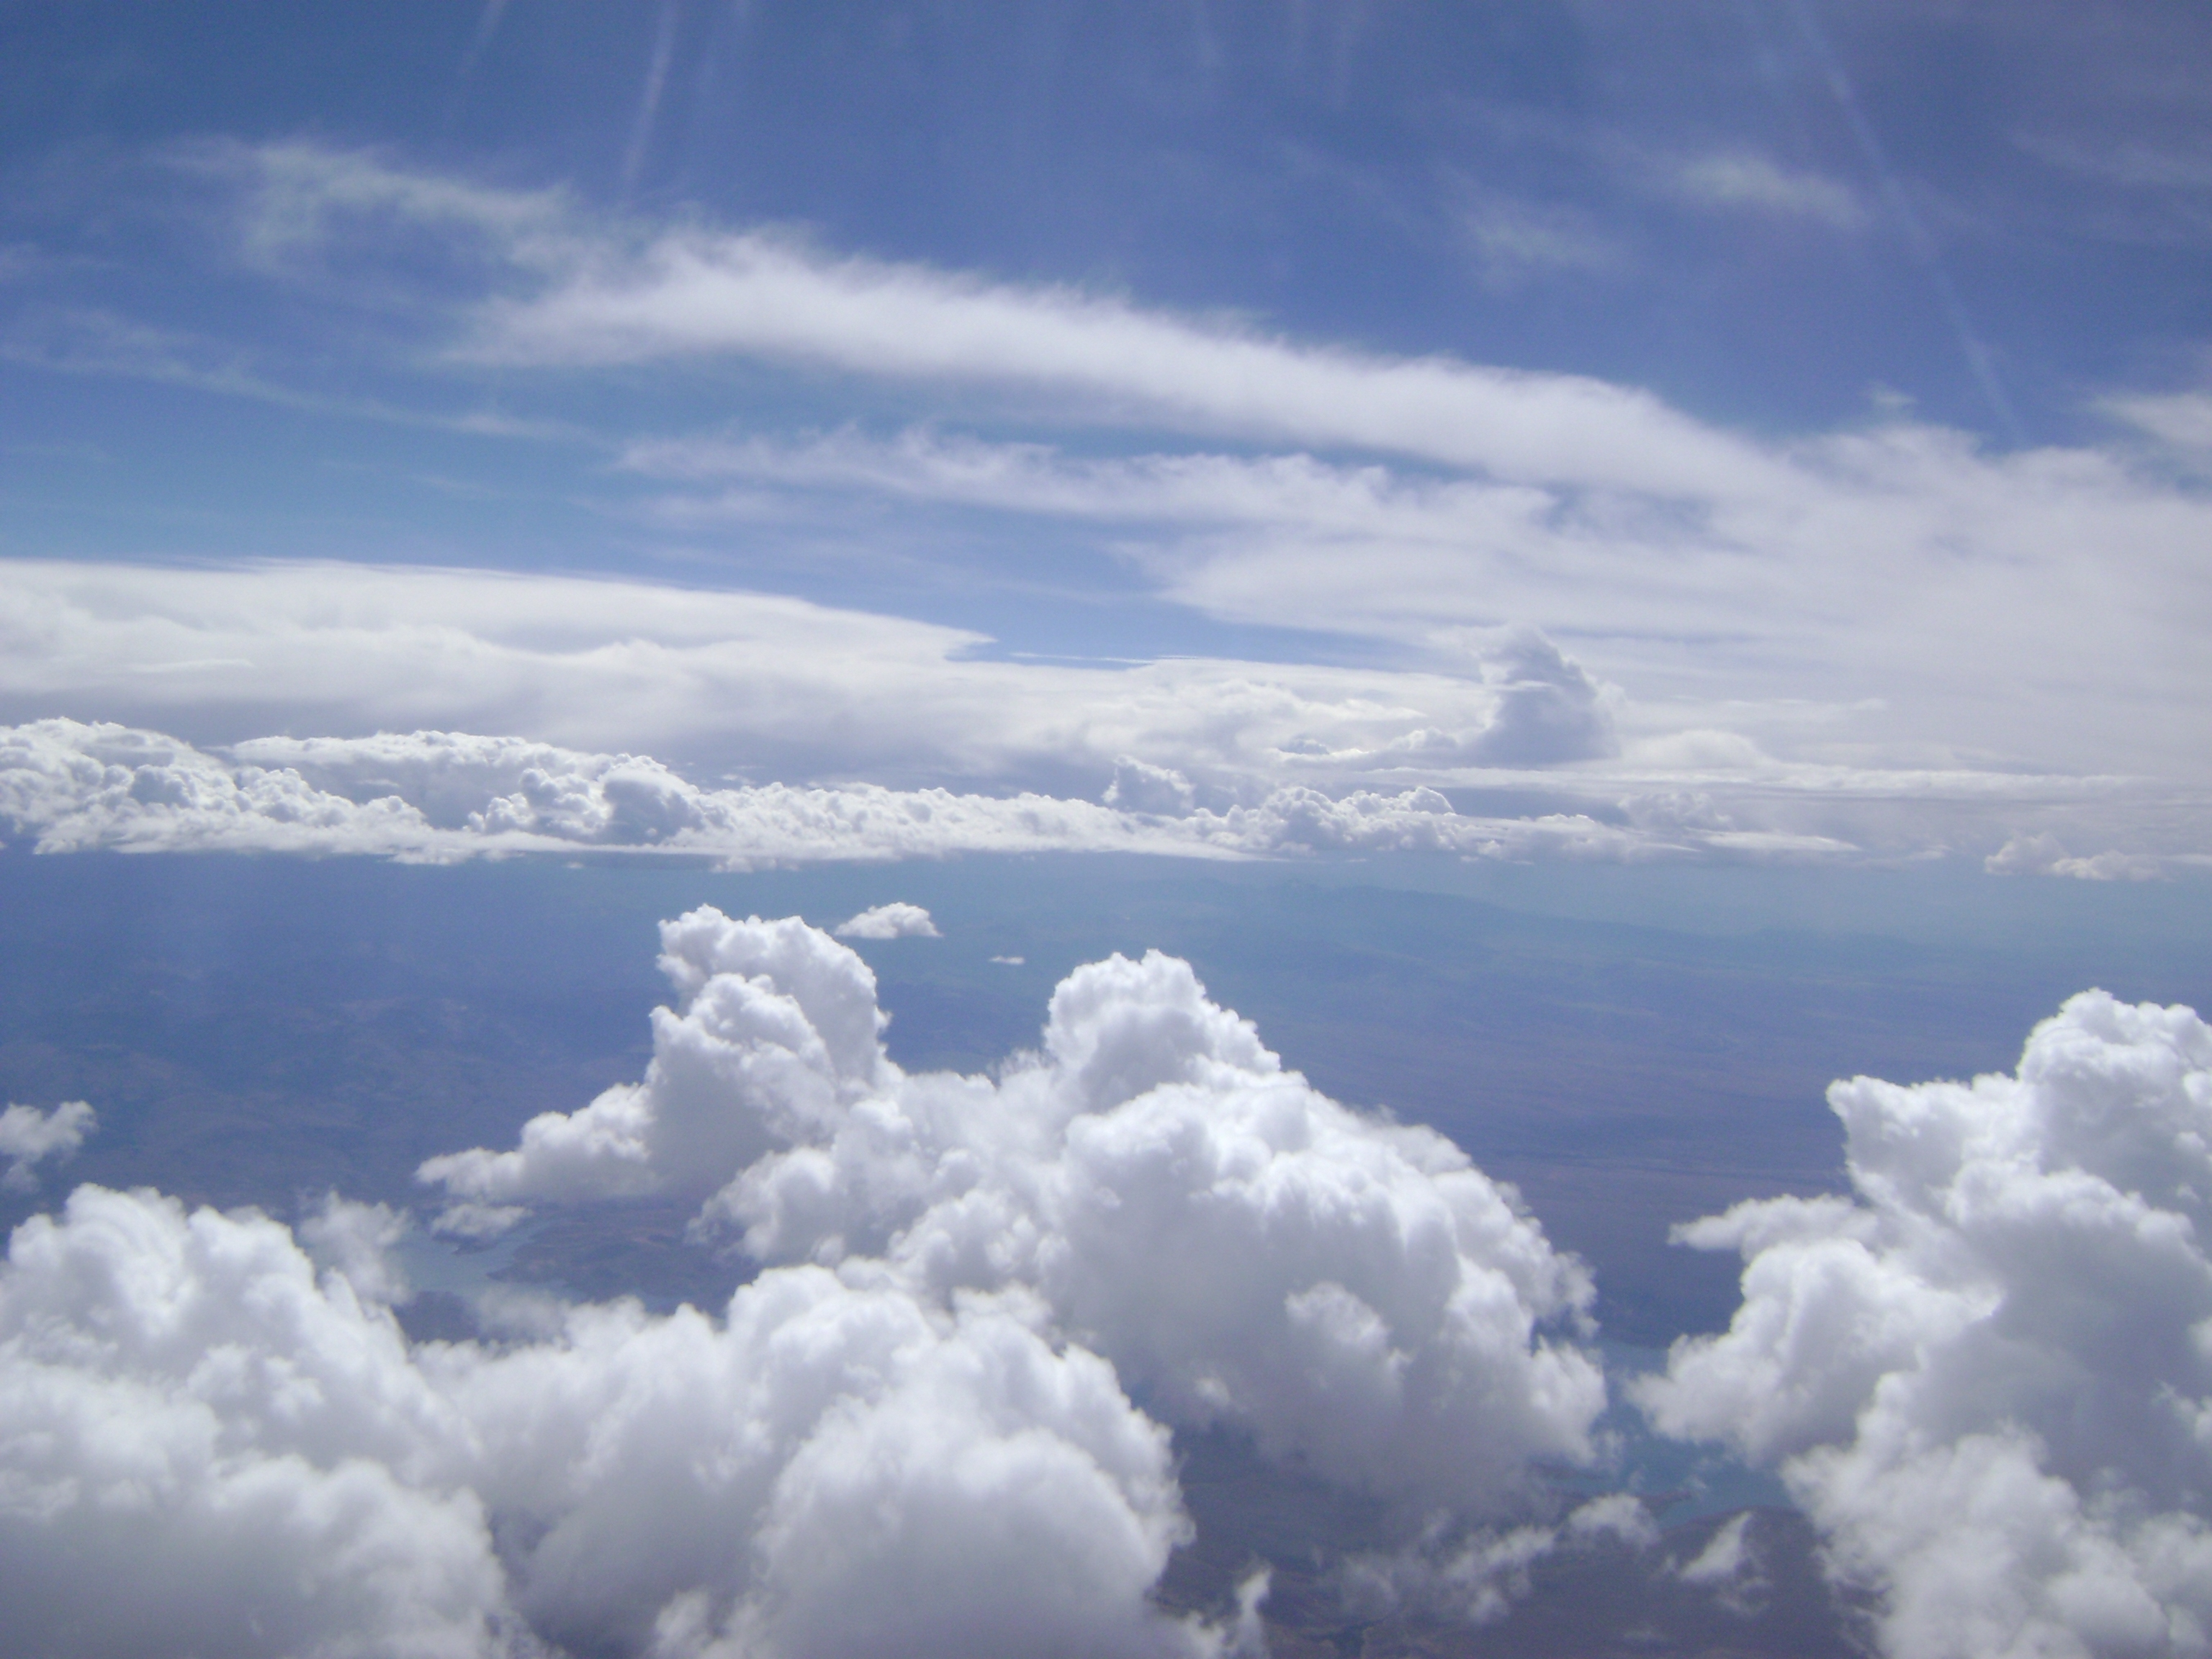 Clouds in the sky photo